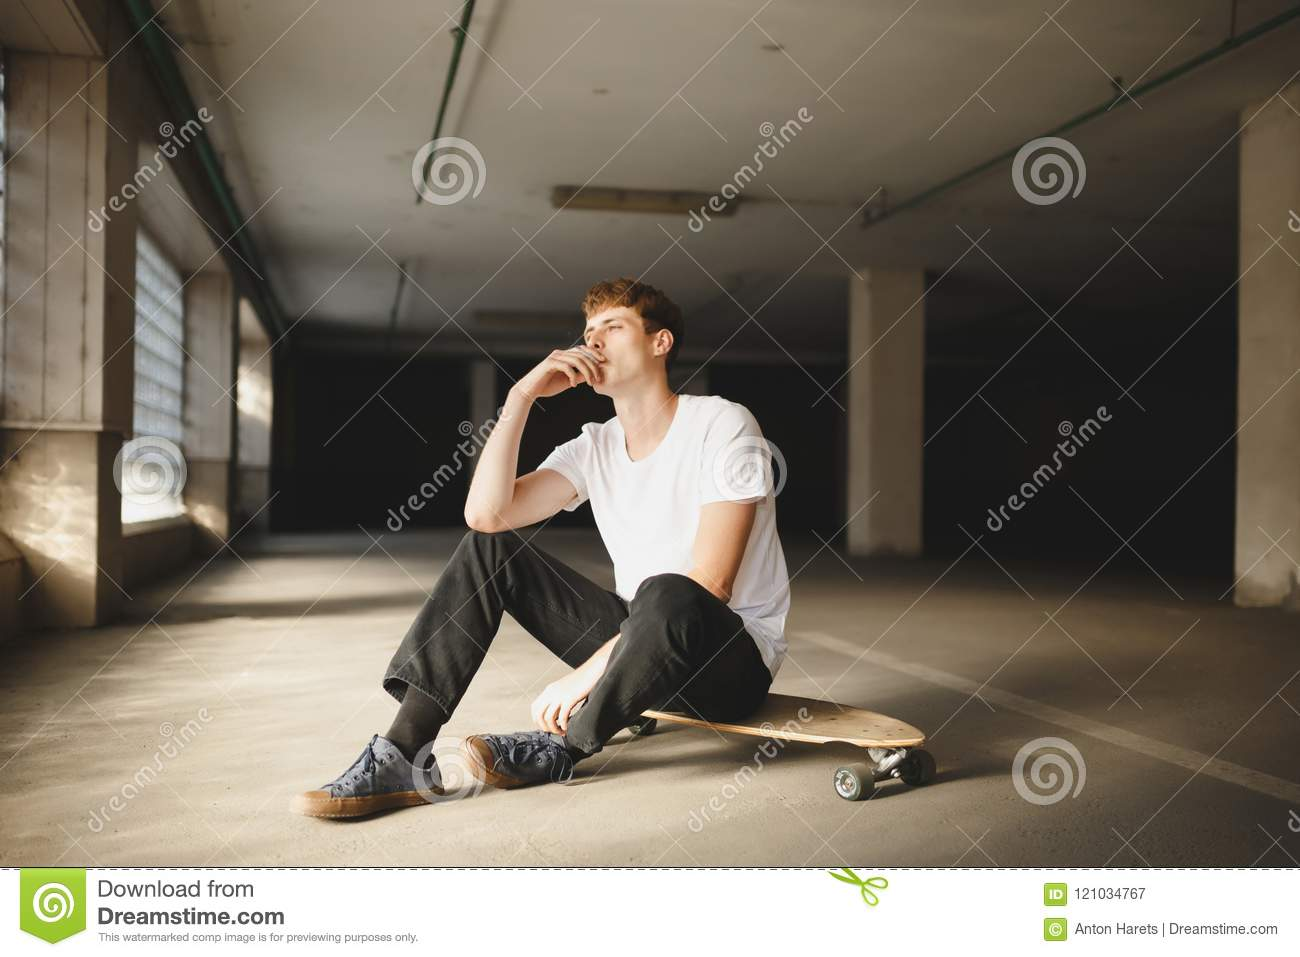 Cool boy with brown hair sitting on skateboard and smoking young thoughtful man in white